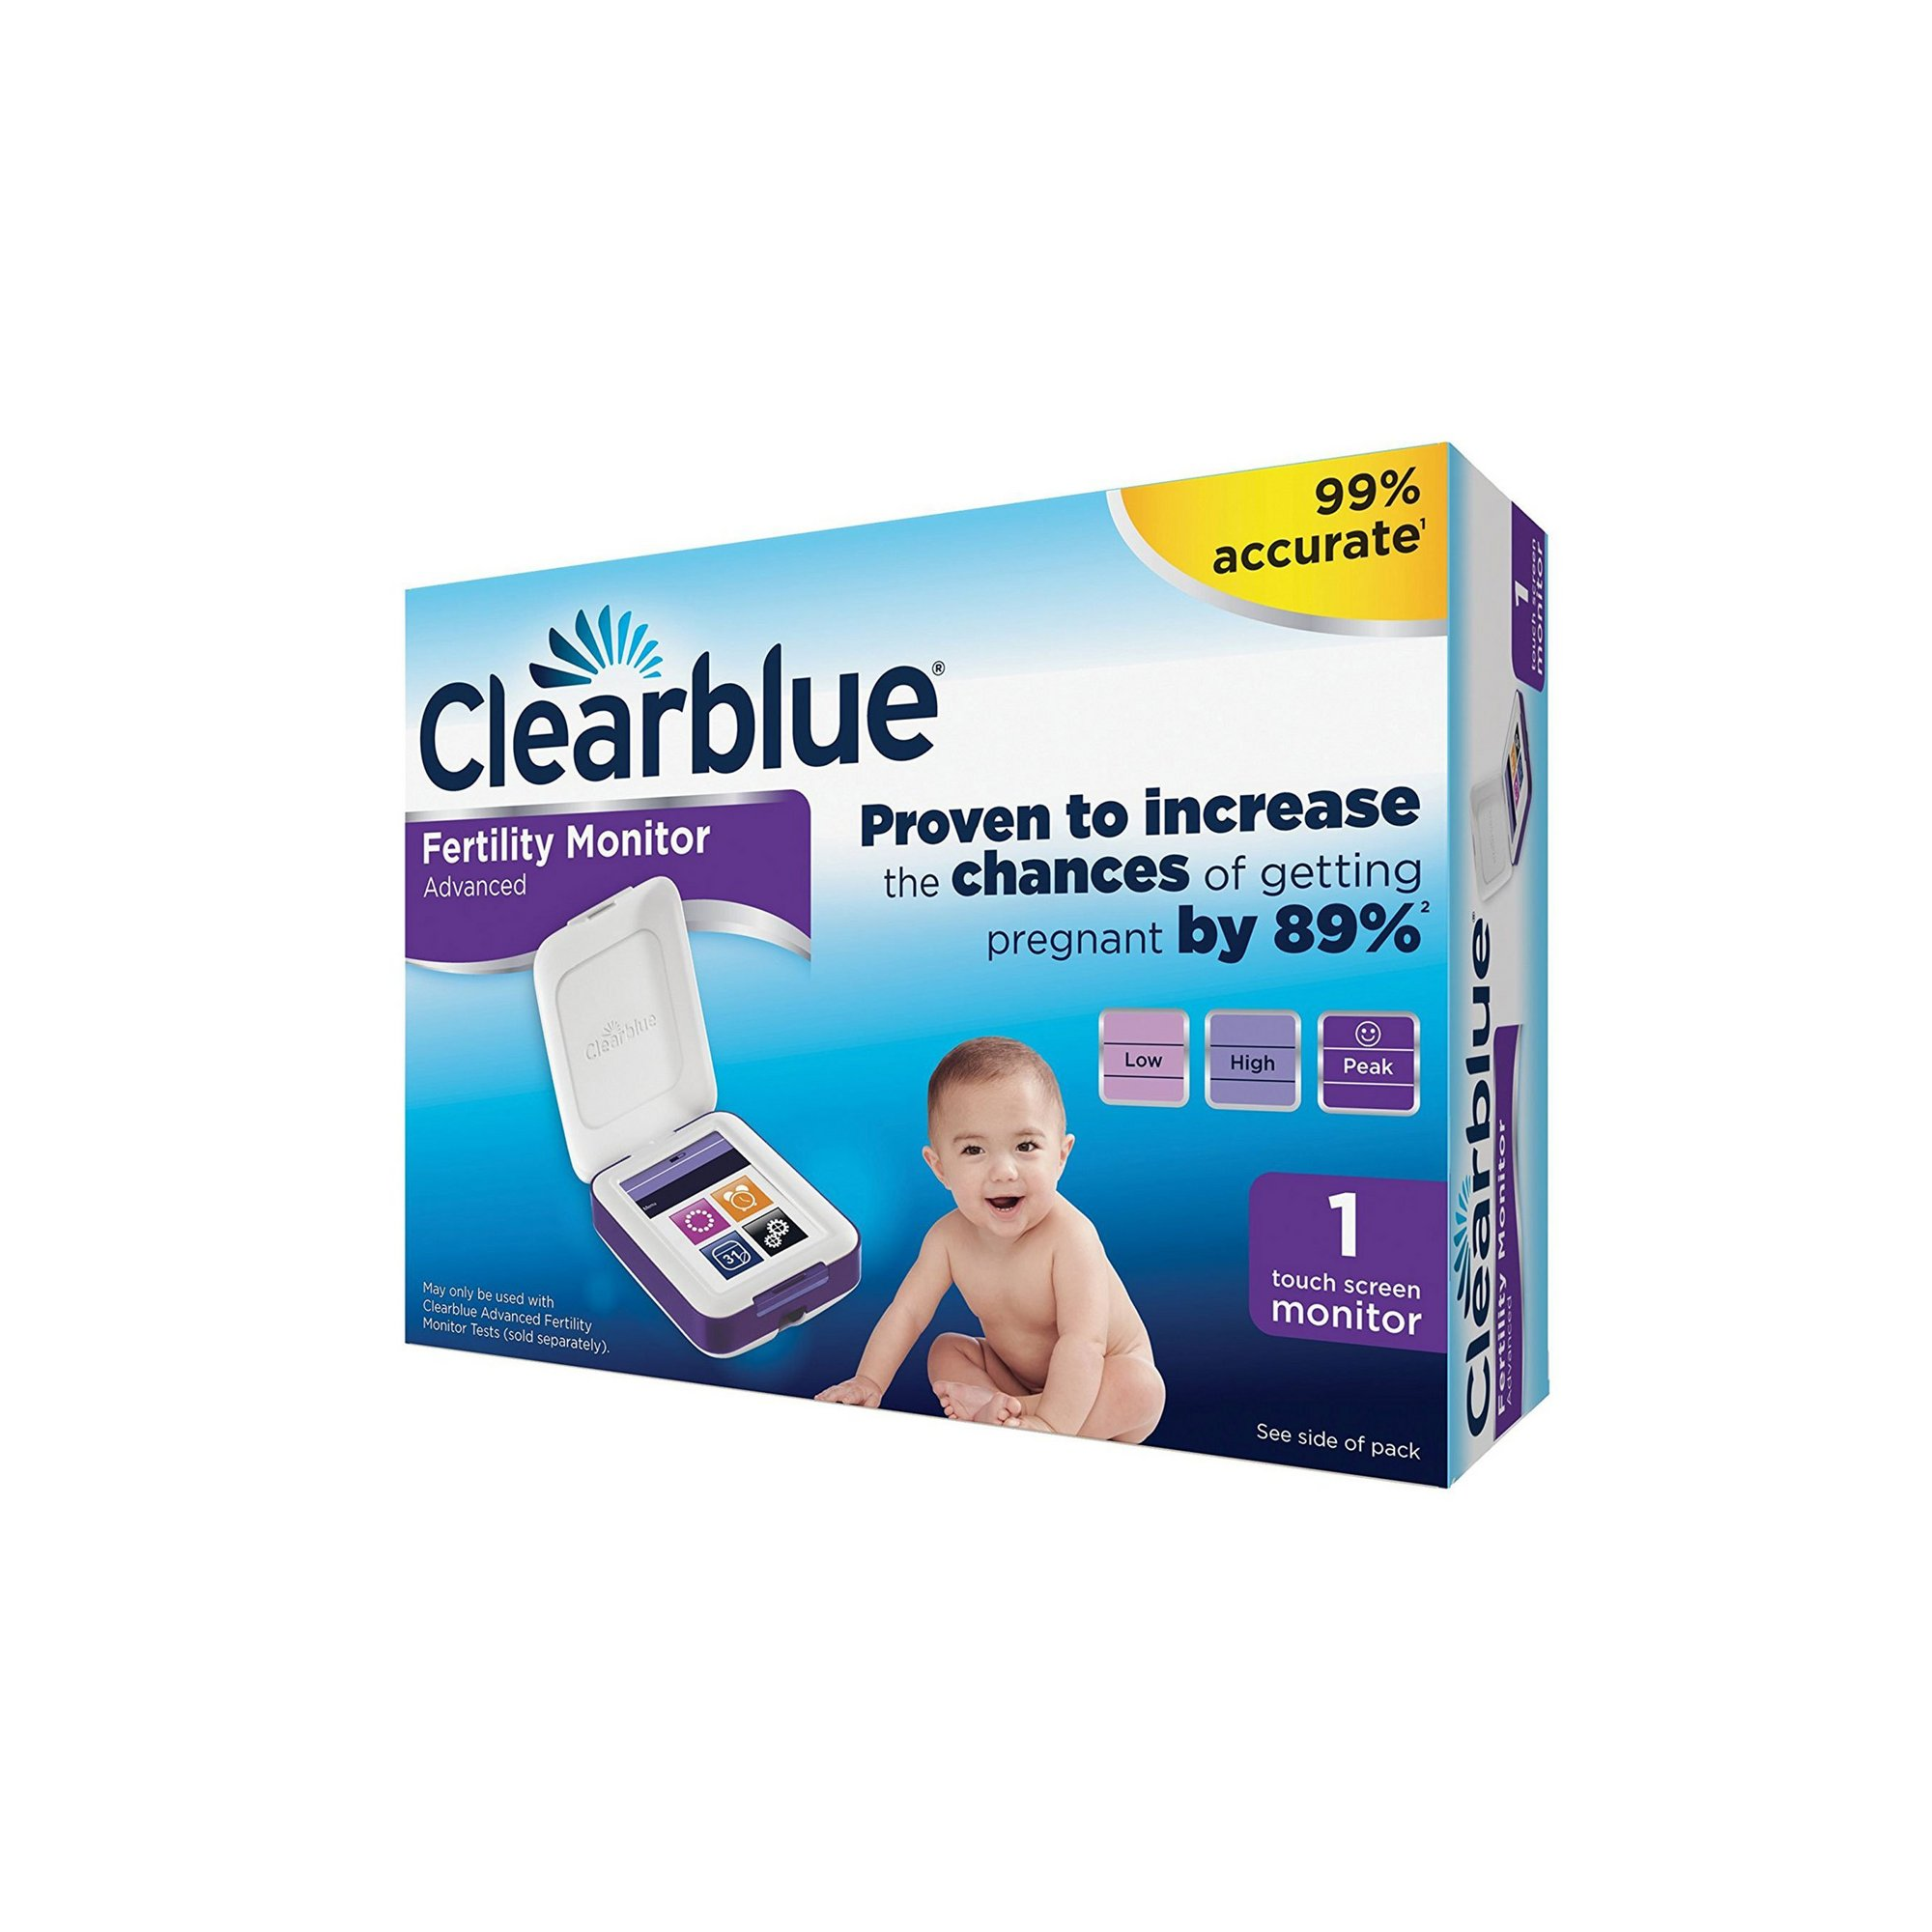 Image of Clearblue Advanced Fertility Monitor 1 Touch Screen Monitor